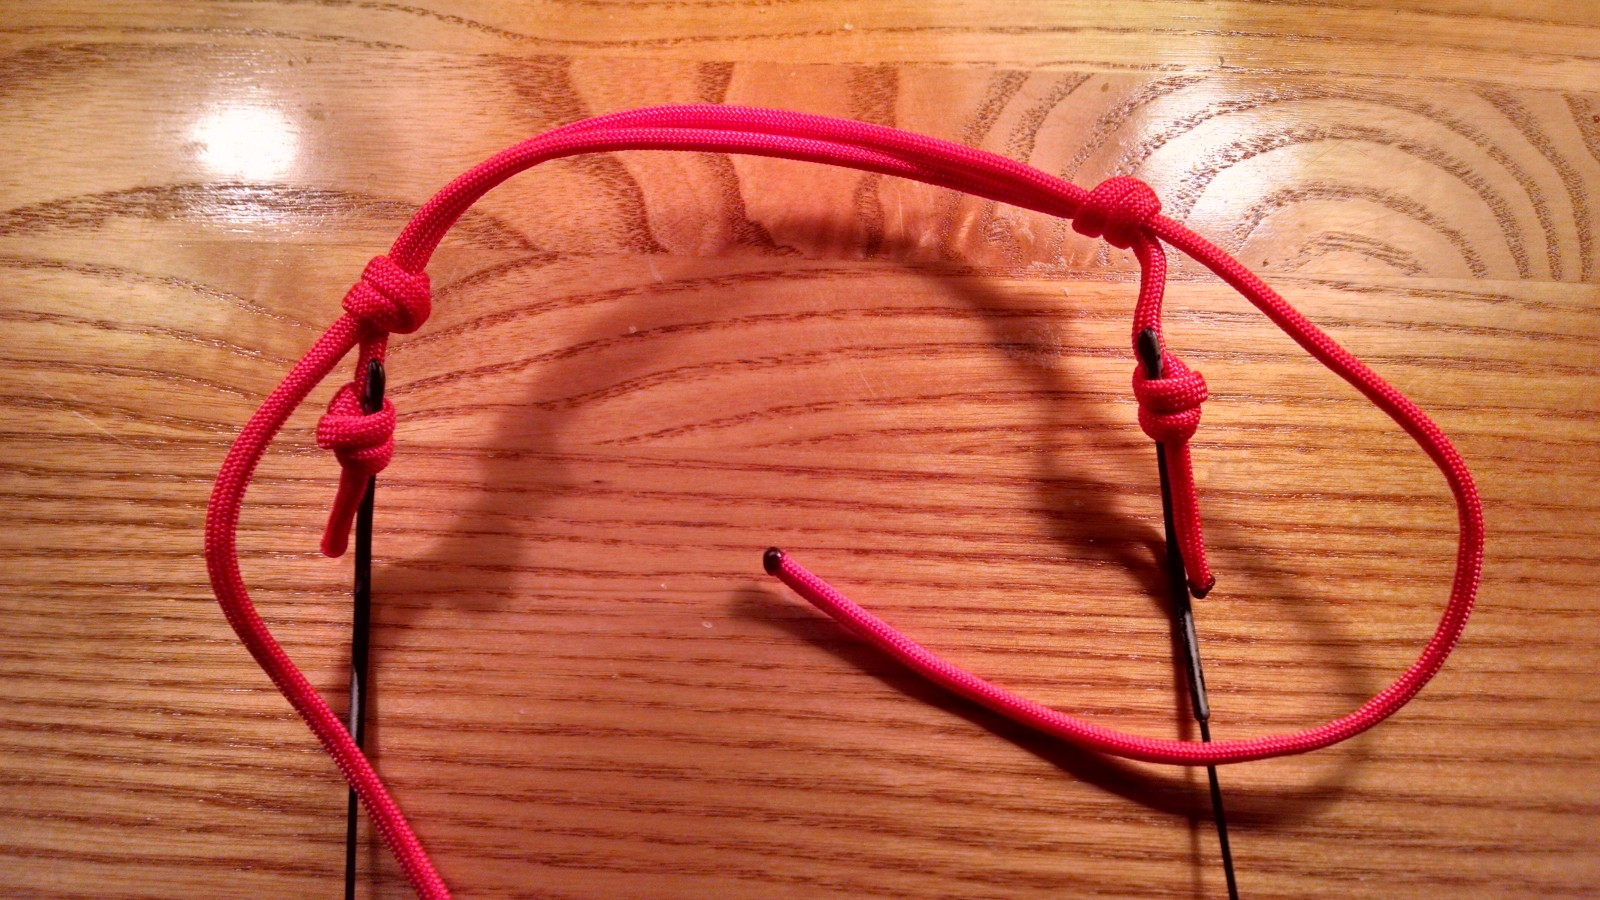 ca633aef94 How to Make a Fully Adjustable Eyewear Retainer Using 2-3 feet of ...